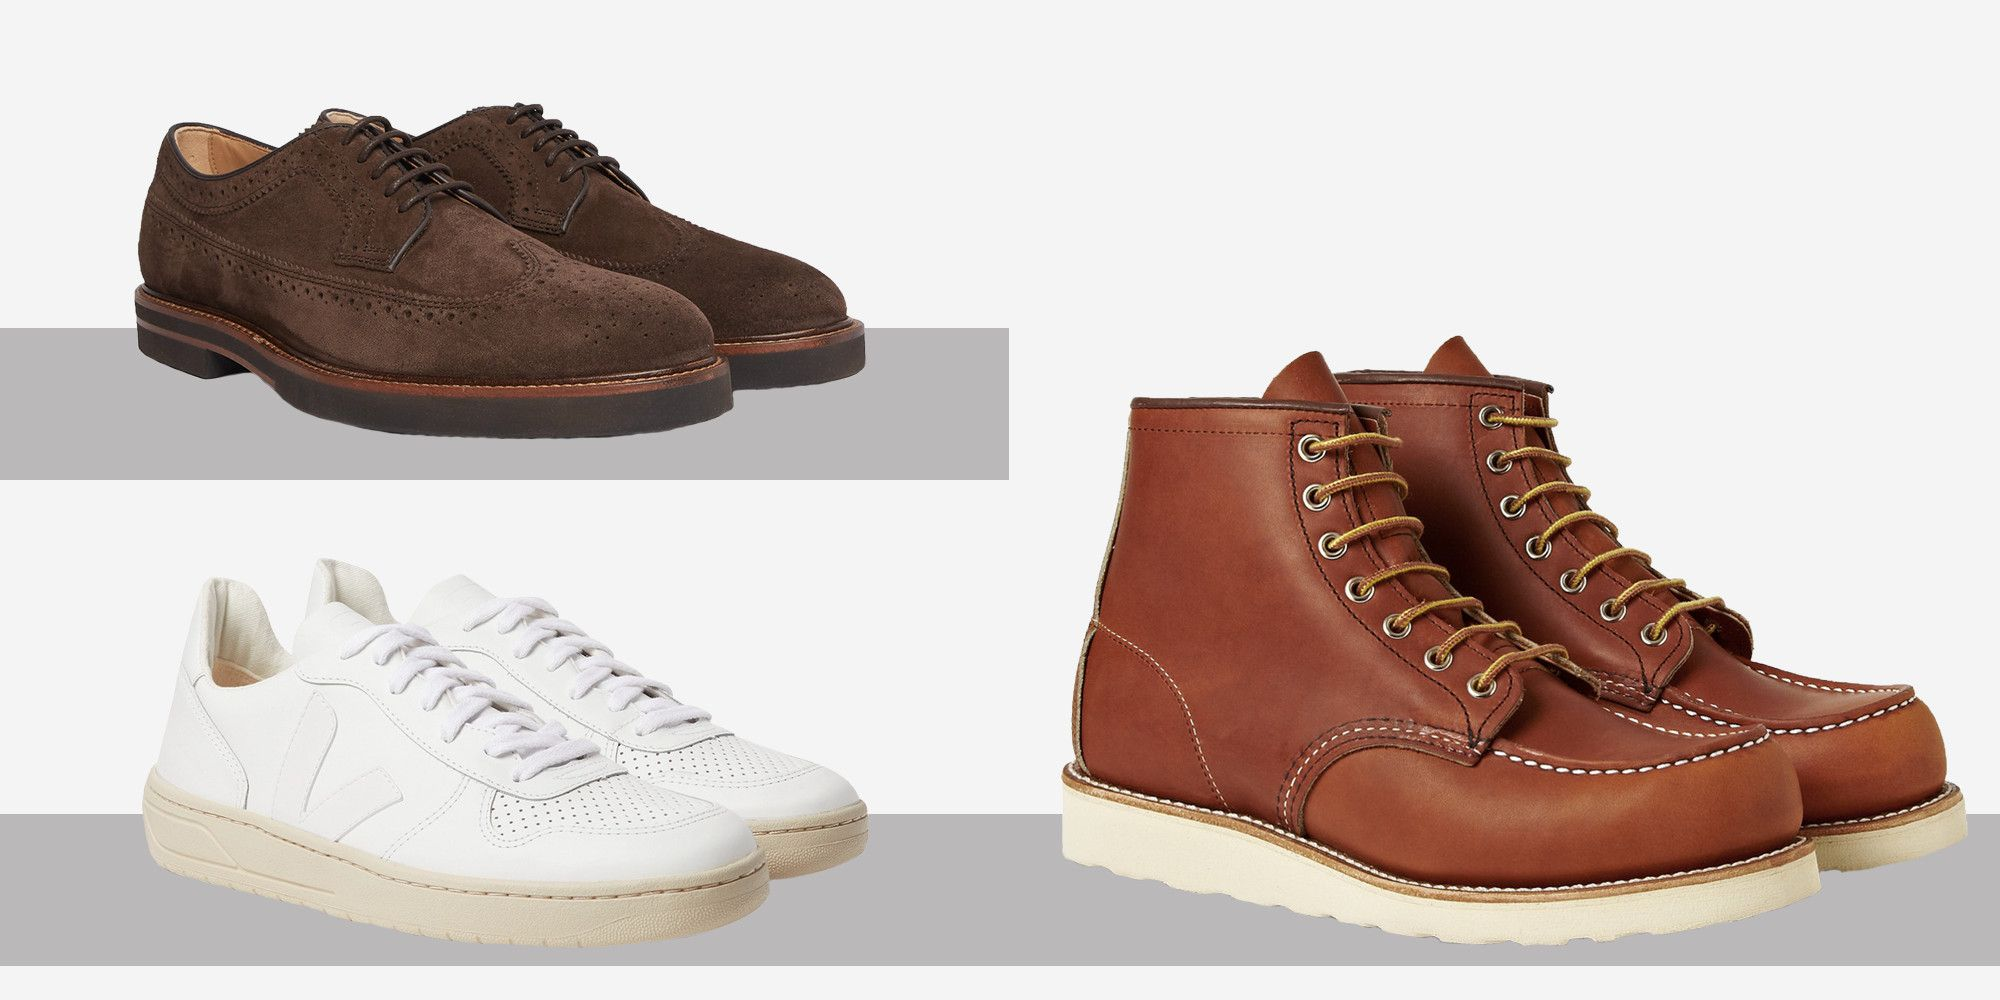 9b2c40c0b03 14 Best Fall Shoes For Men - Best Men's Shoes and Boots for Fall 2019